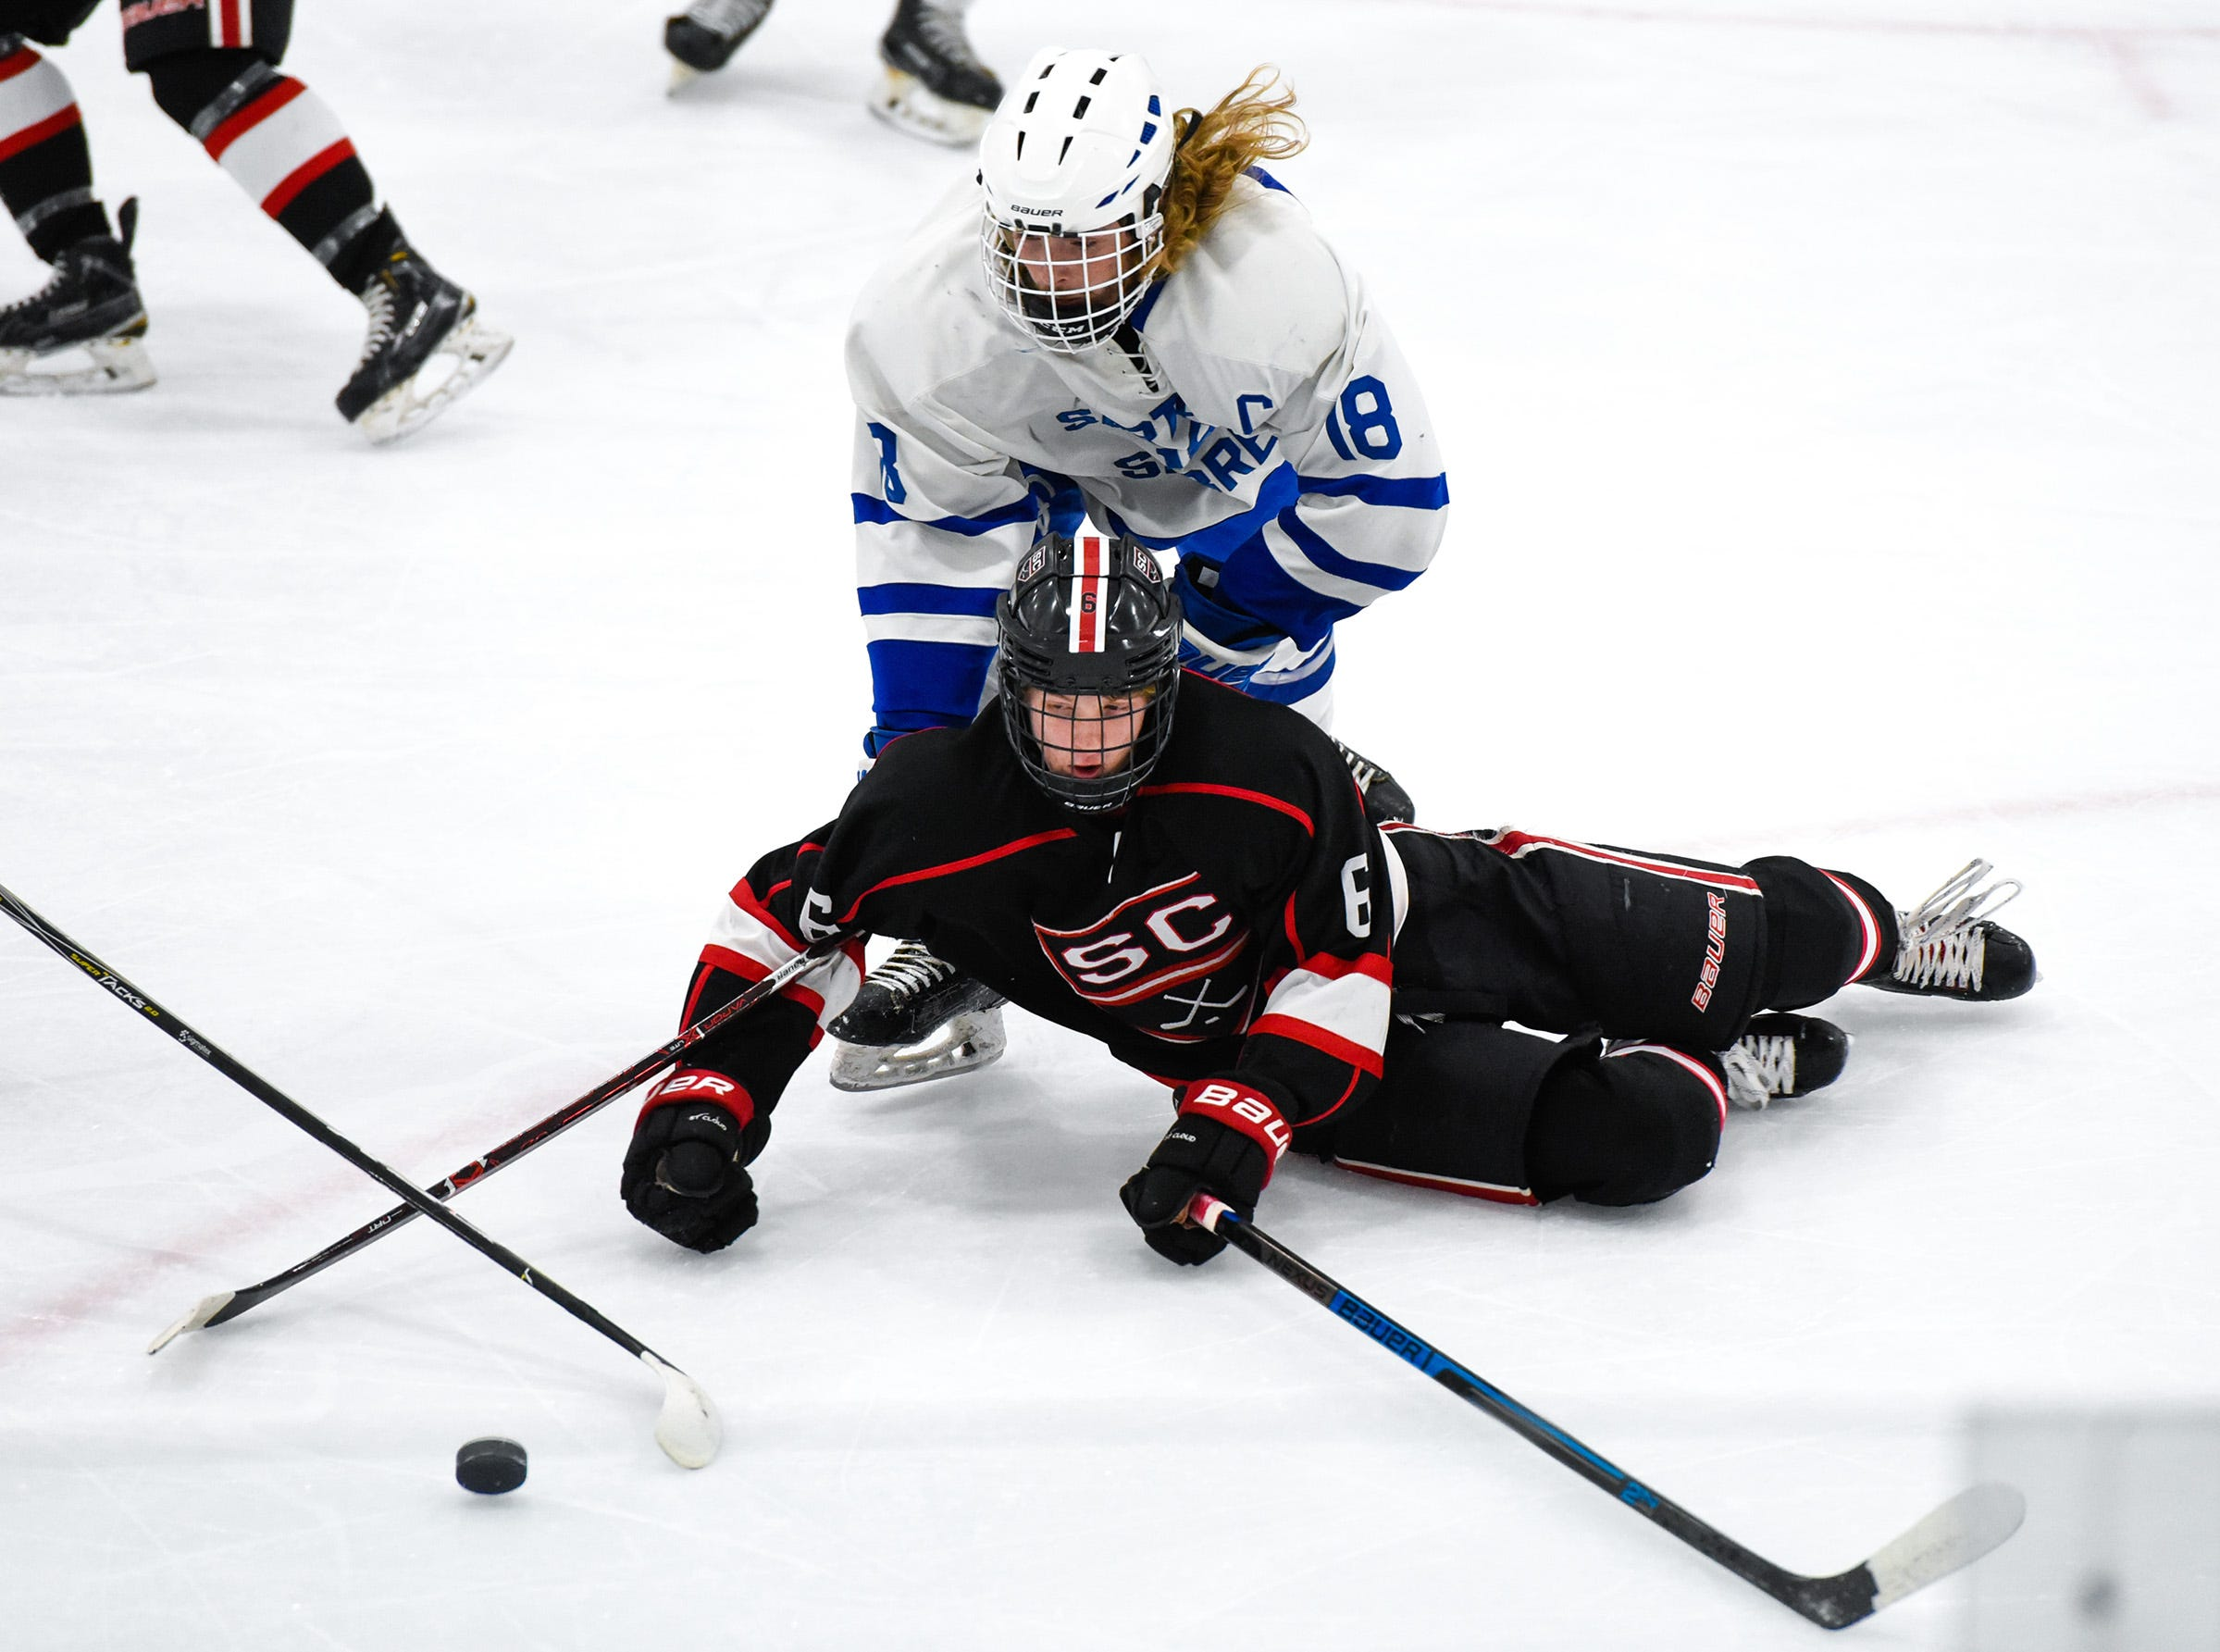 St. Cloud's Eric Warner and Sartell's Jack Hennemann go after the puck during the first period Tuesday, Dec. 18, at the Bernick's Arena in Sartell.